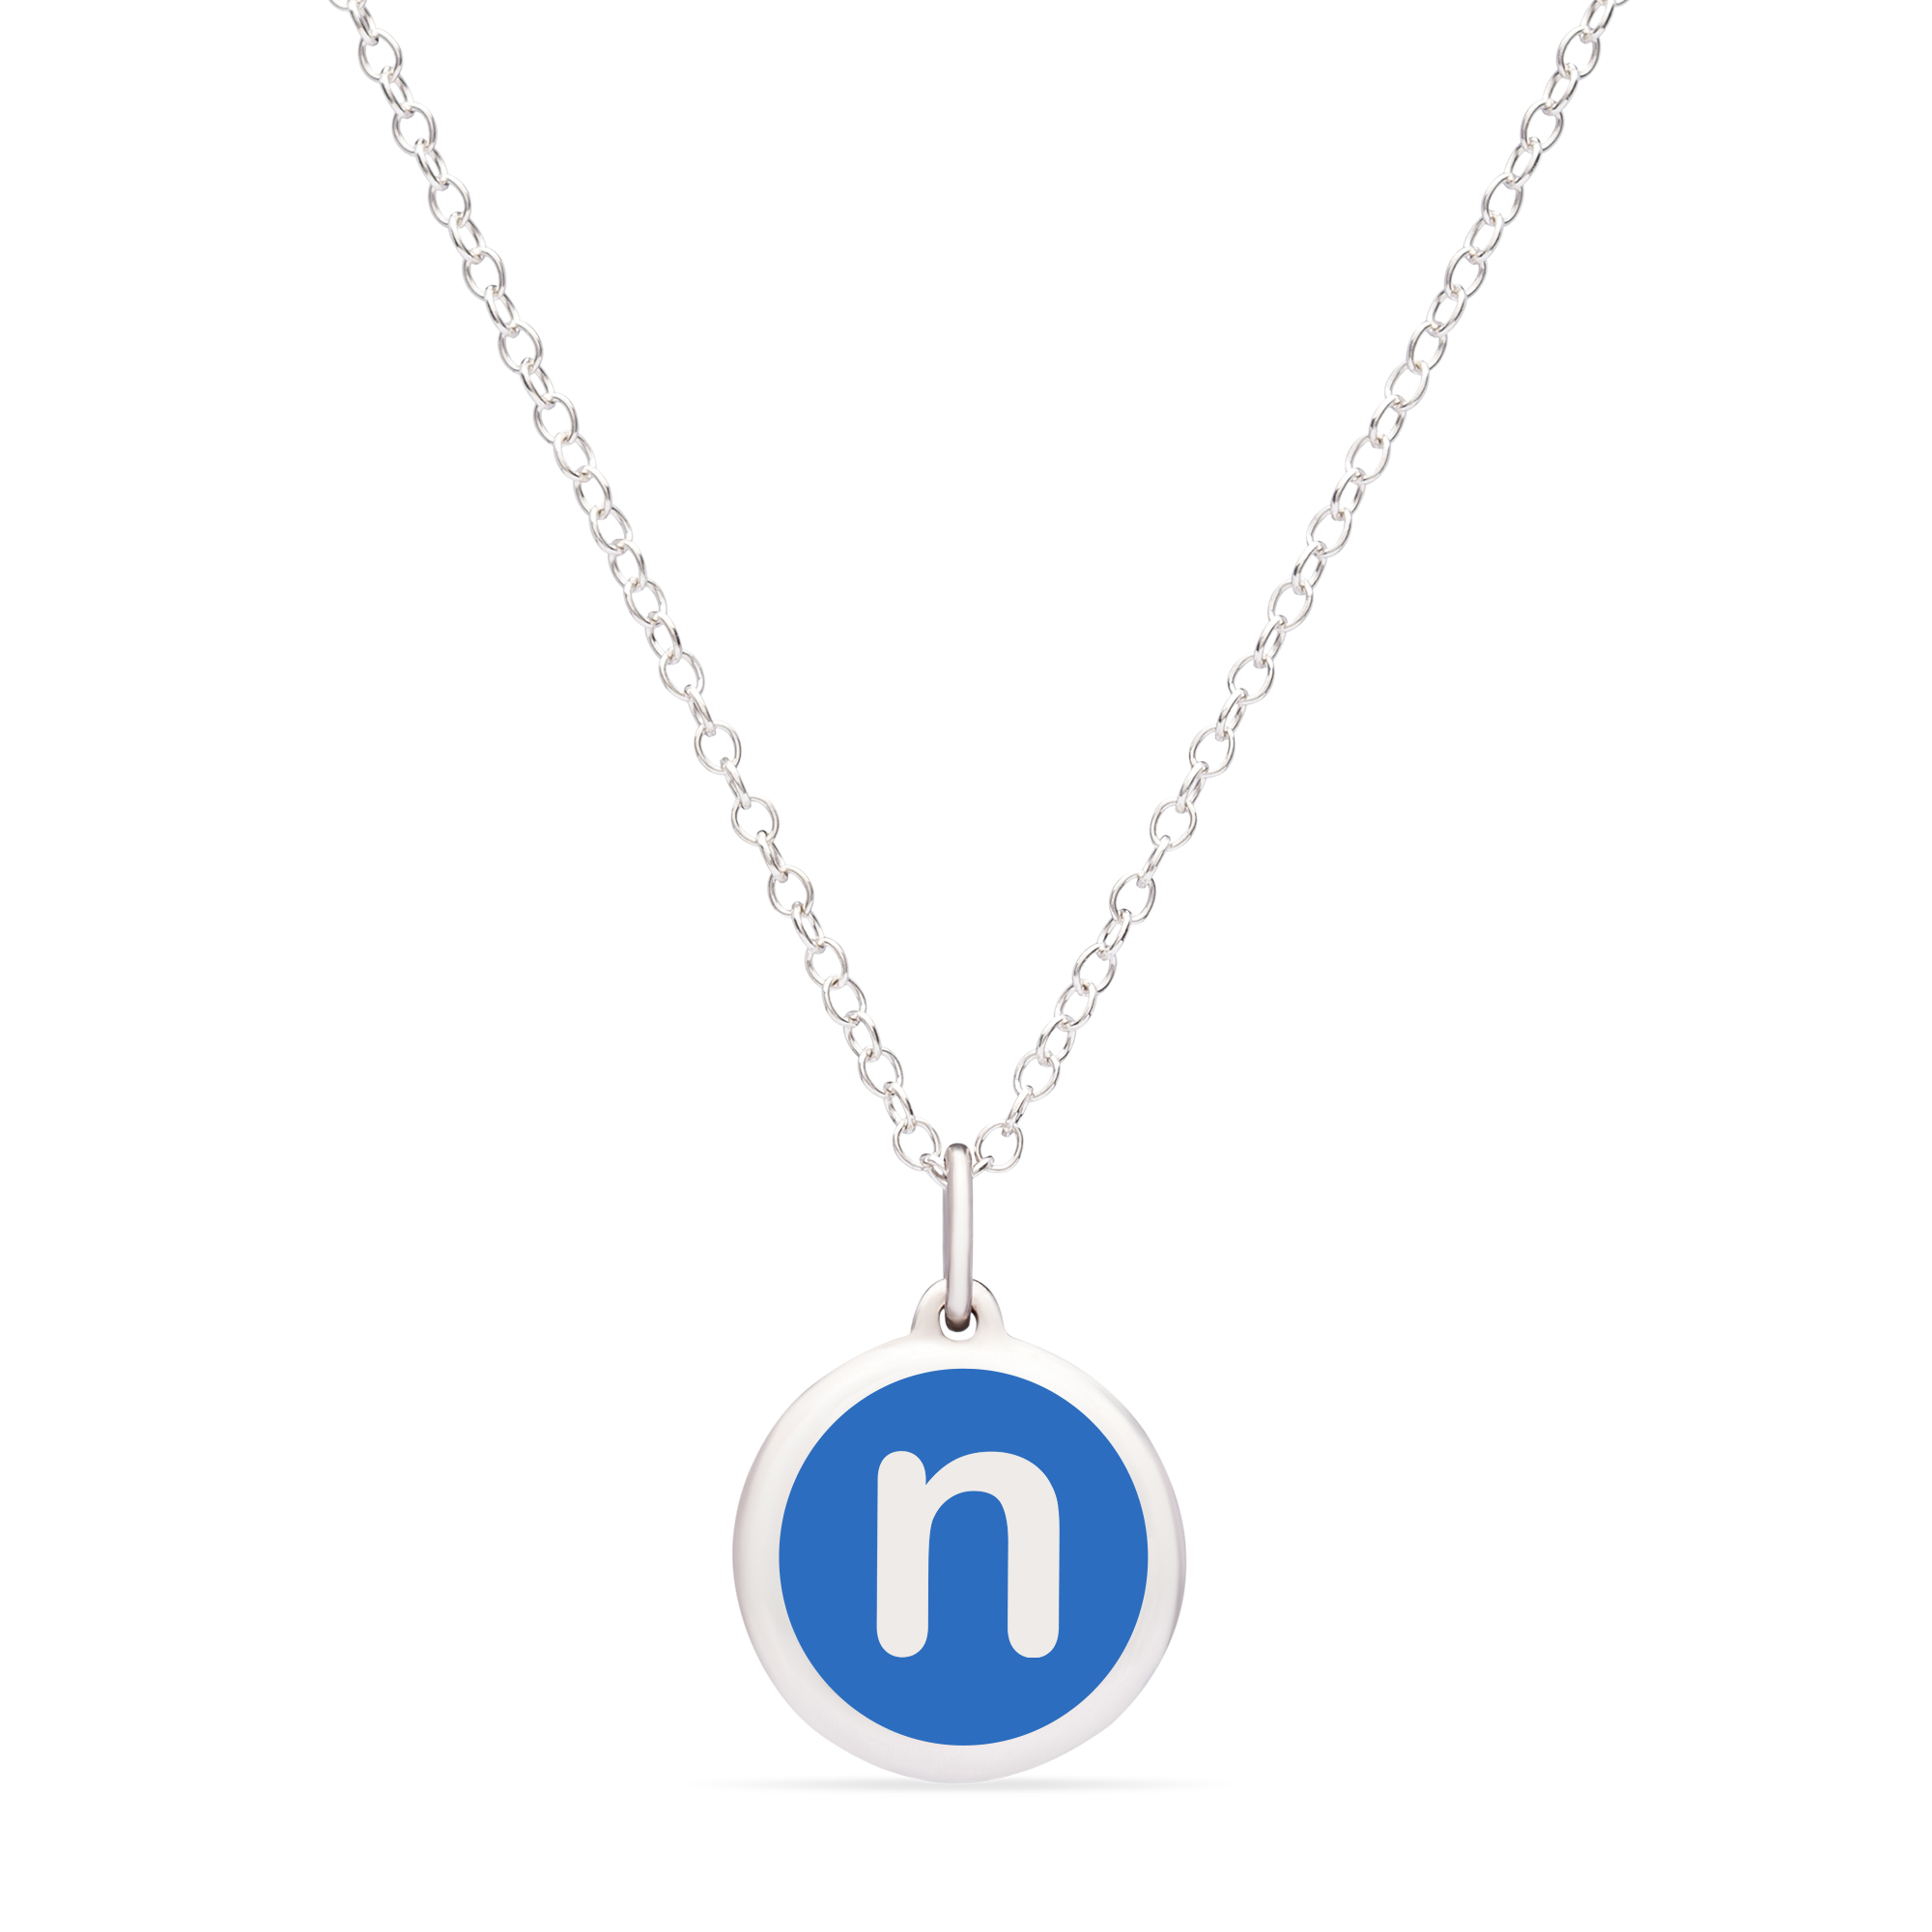 MINI INITIAL 'n' CHARM sterling silver with rhodium plate